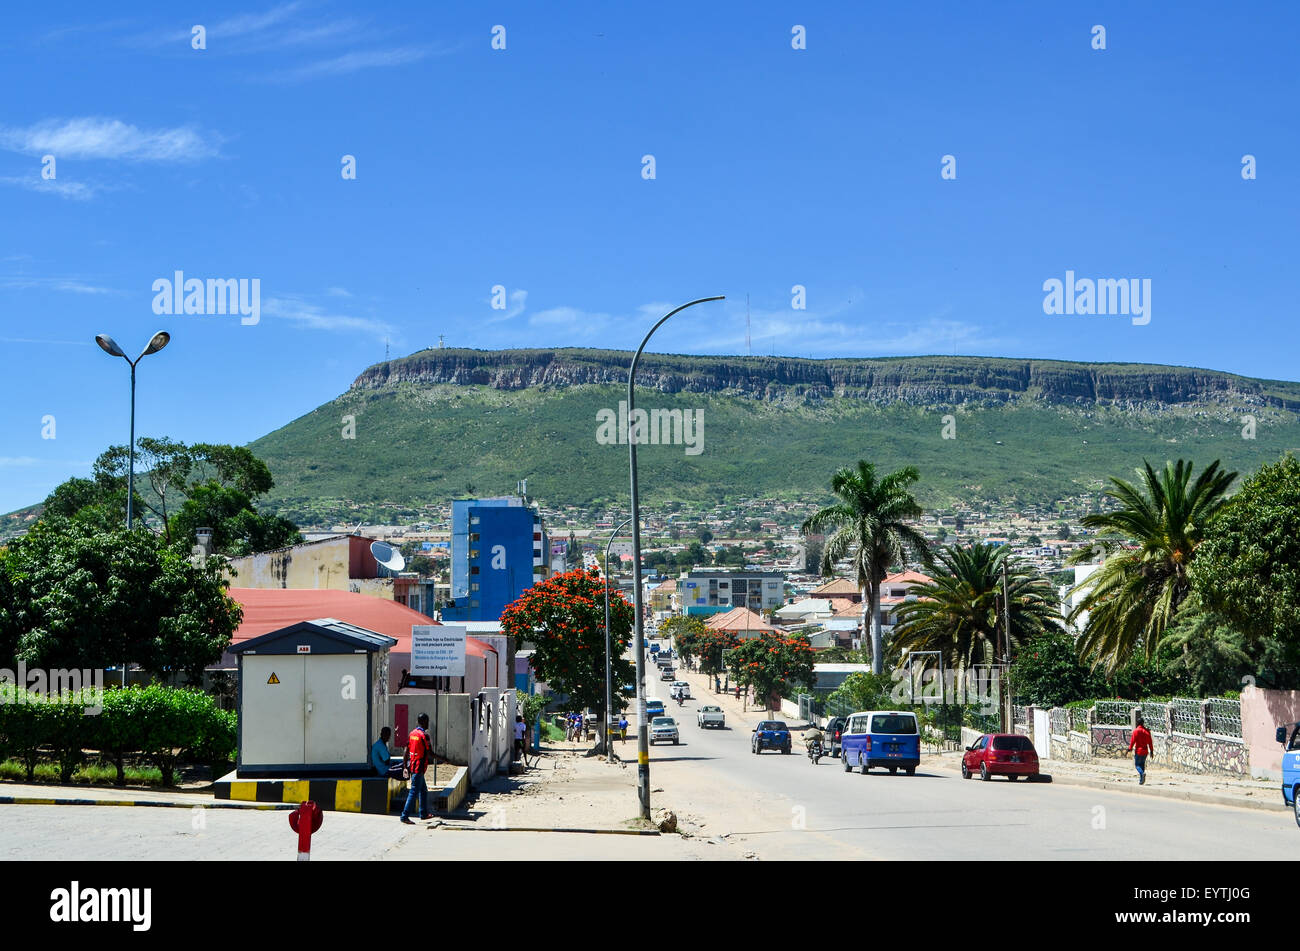 Street view of the city of Lubango, Angola, with mountain and Cristo Rei in the background - Stock Image